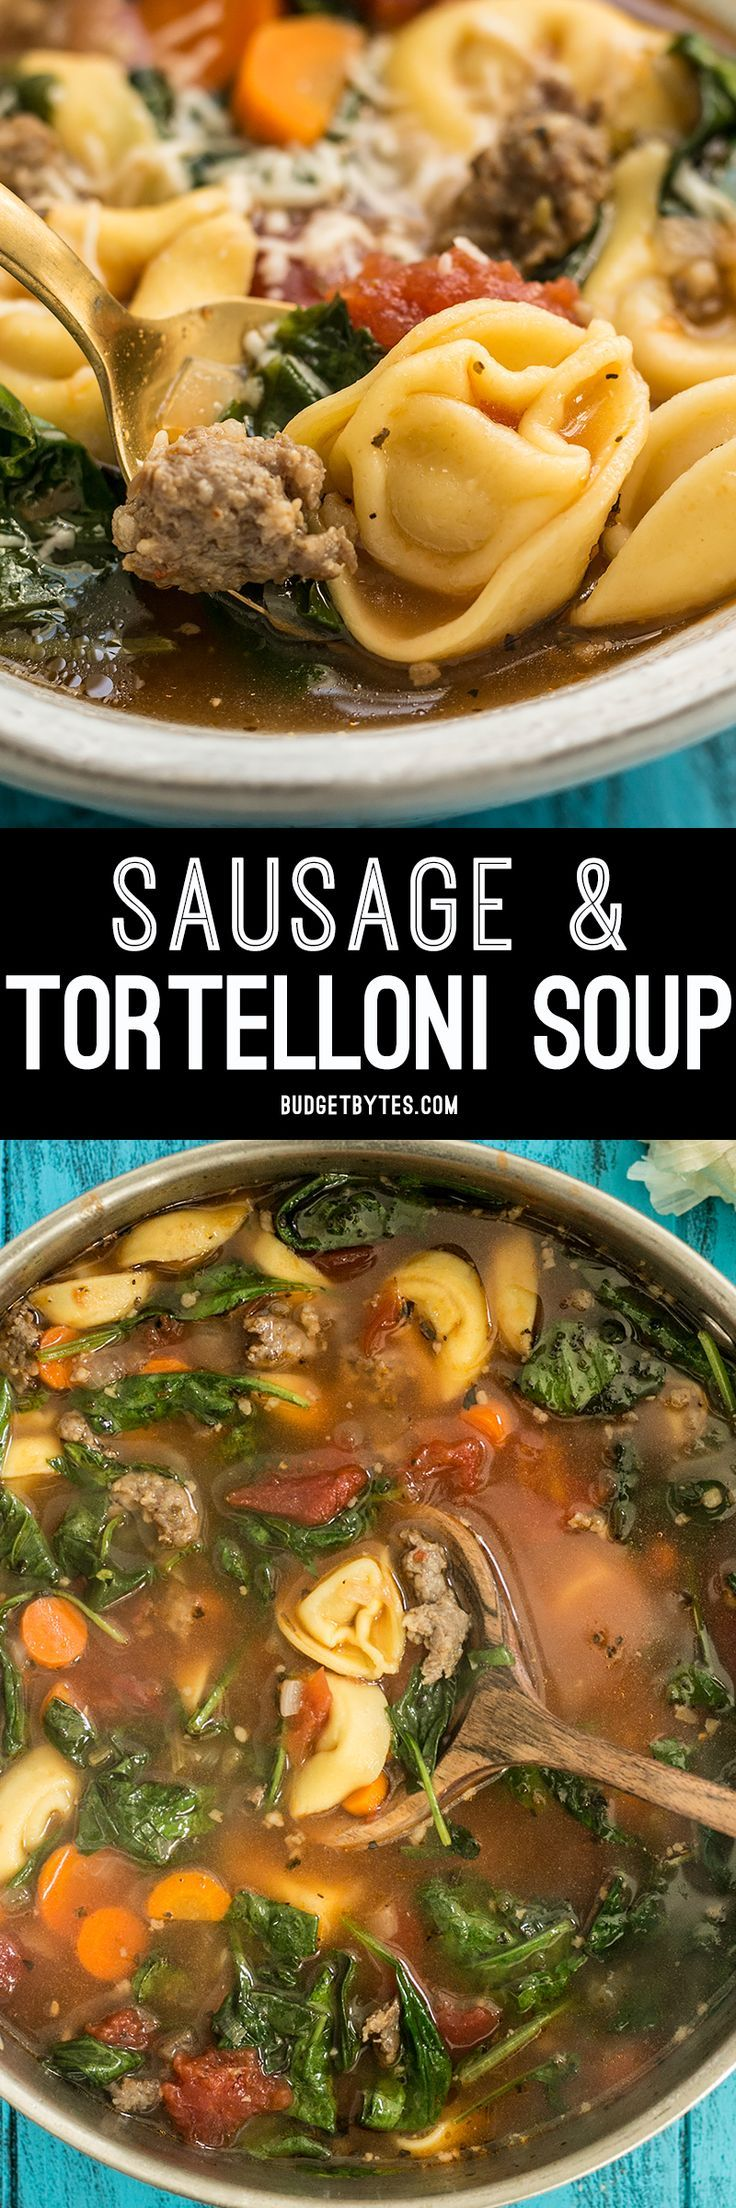 This light but filling vegetable packed Sausage and Tortelloni soup is the perfect lunch for fall. Pair with crusty bread for dipping!